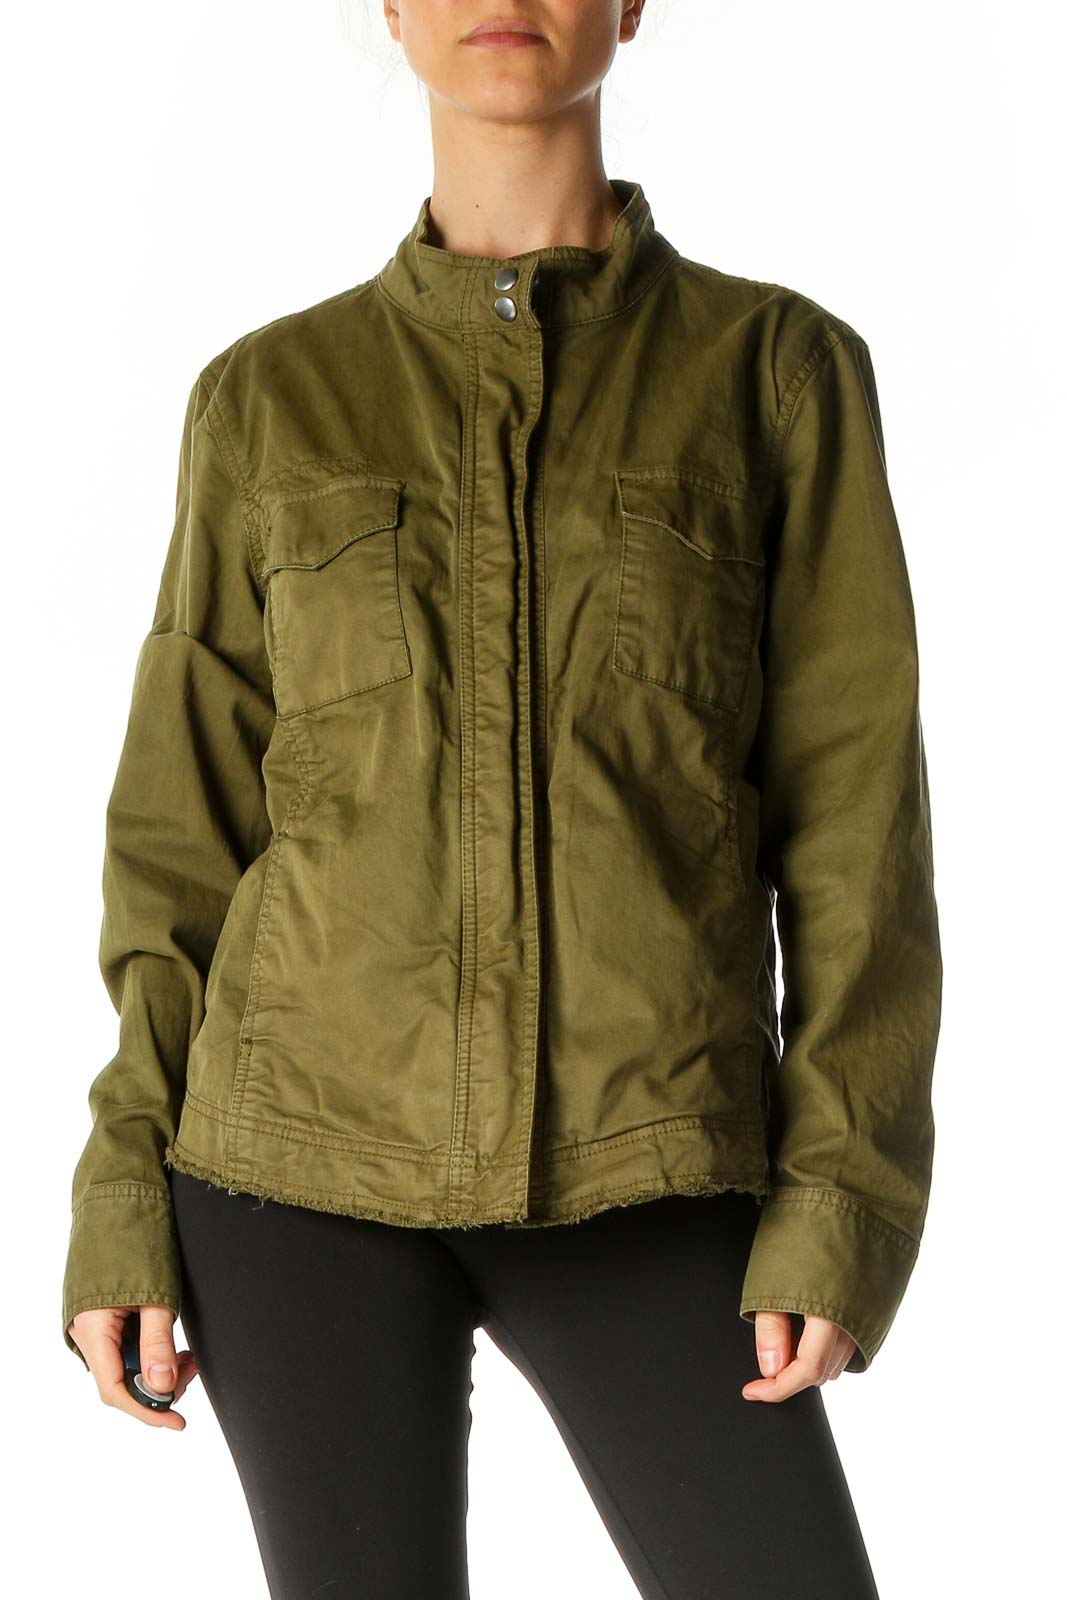 Green Military Jacket Front